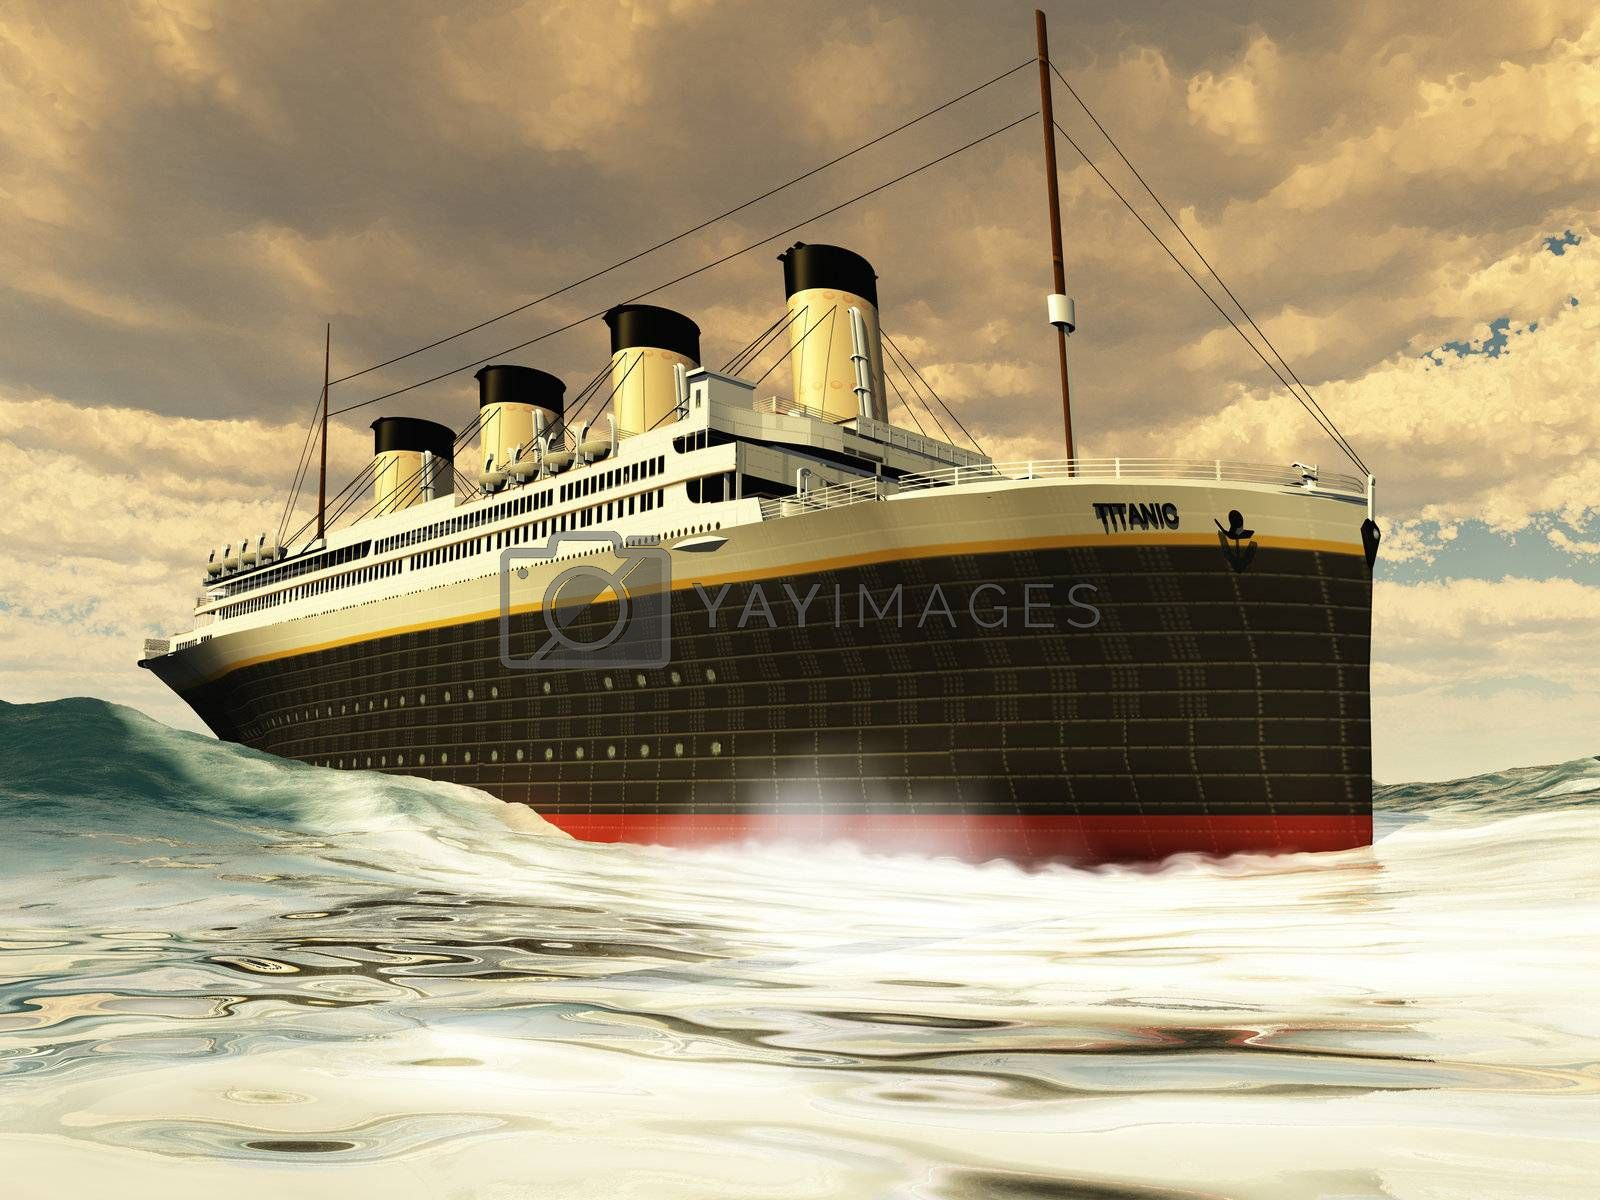 The grand and elegant Titanic glides through the ocean with ease.